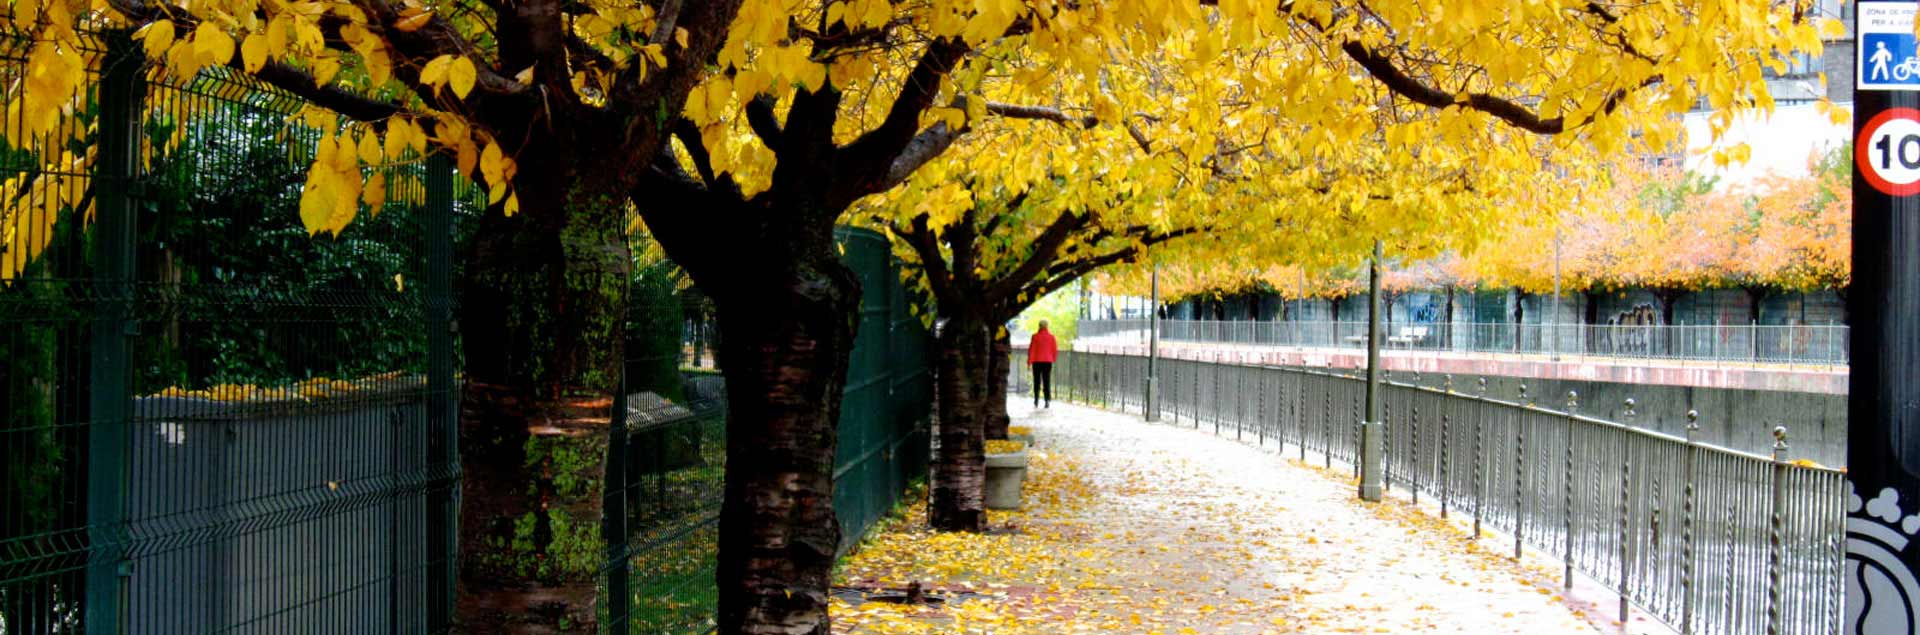 Autumn walking through Andorra la Vella